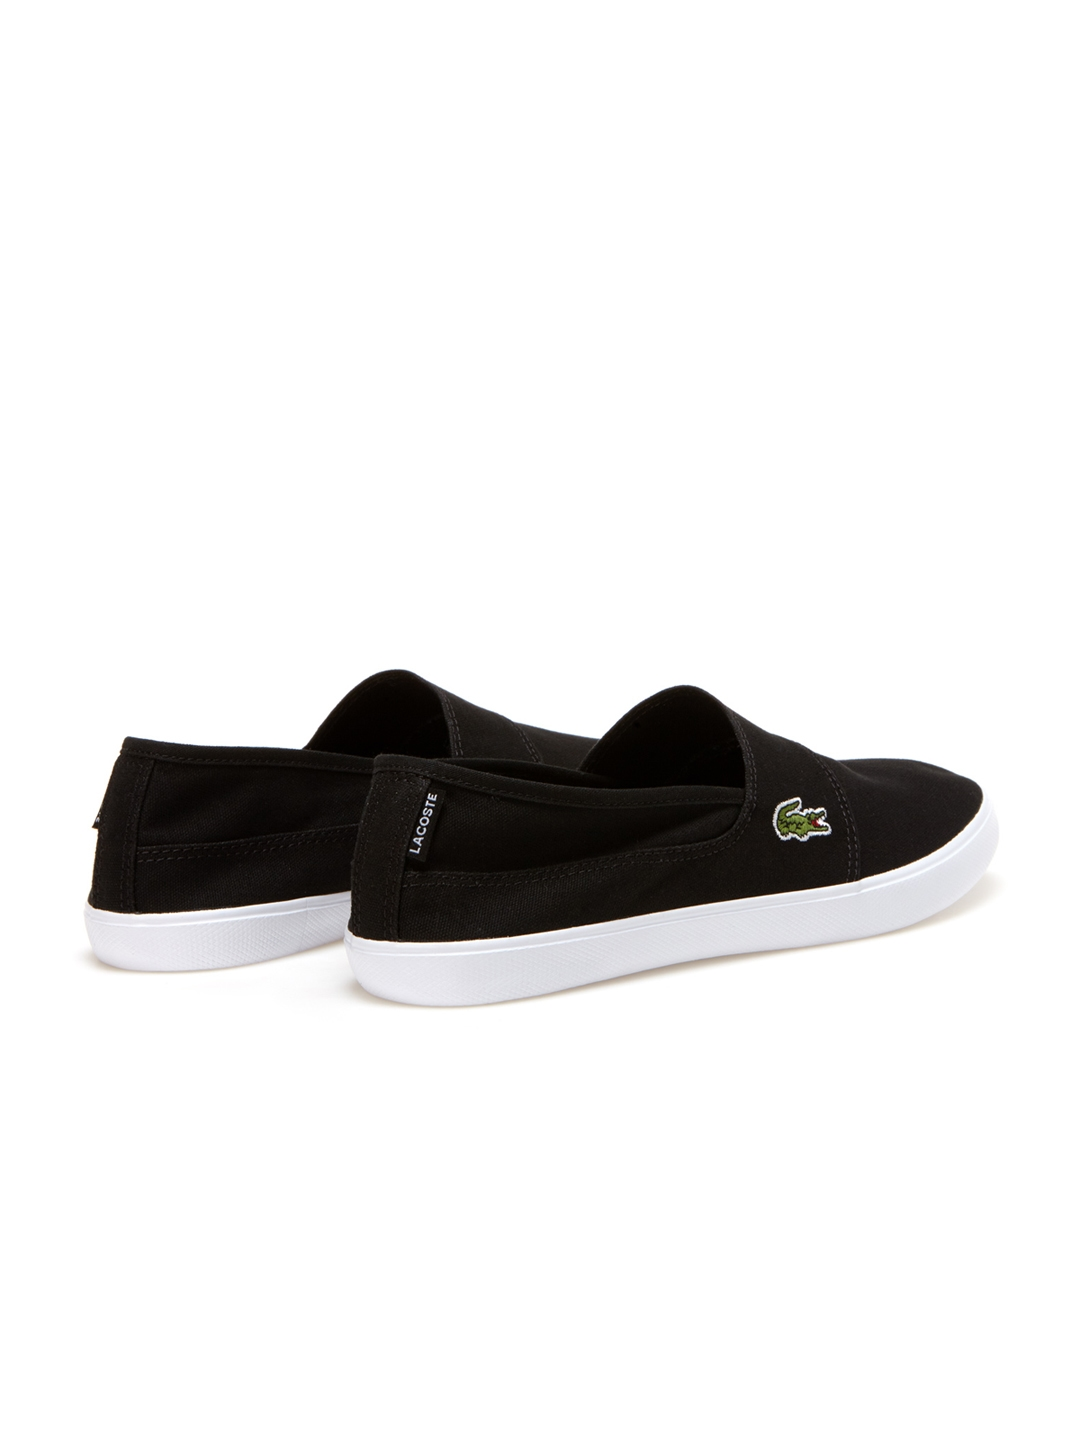 f2c168e5c Buy Lacoste Men Black Slip On Sneakers - Casual Shoes for Men ...